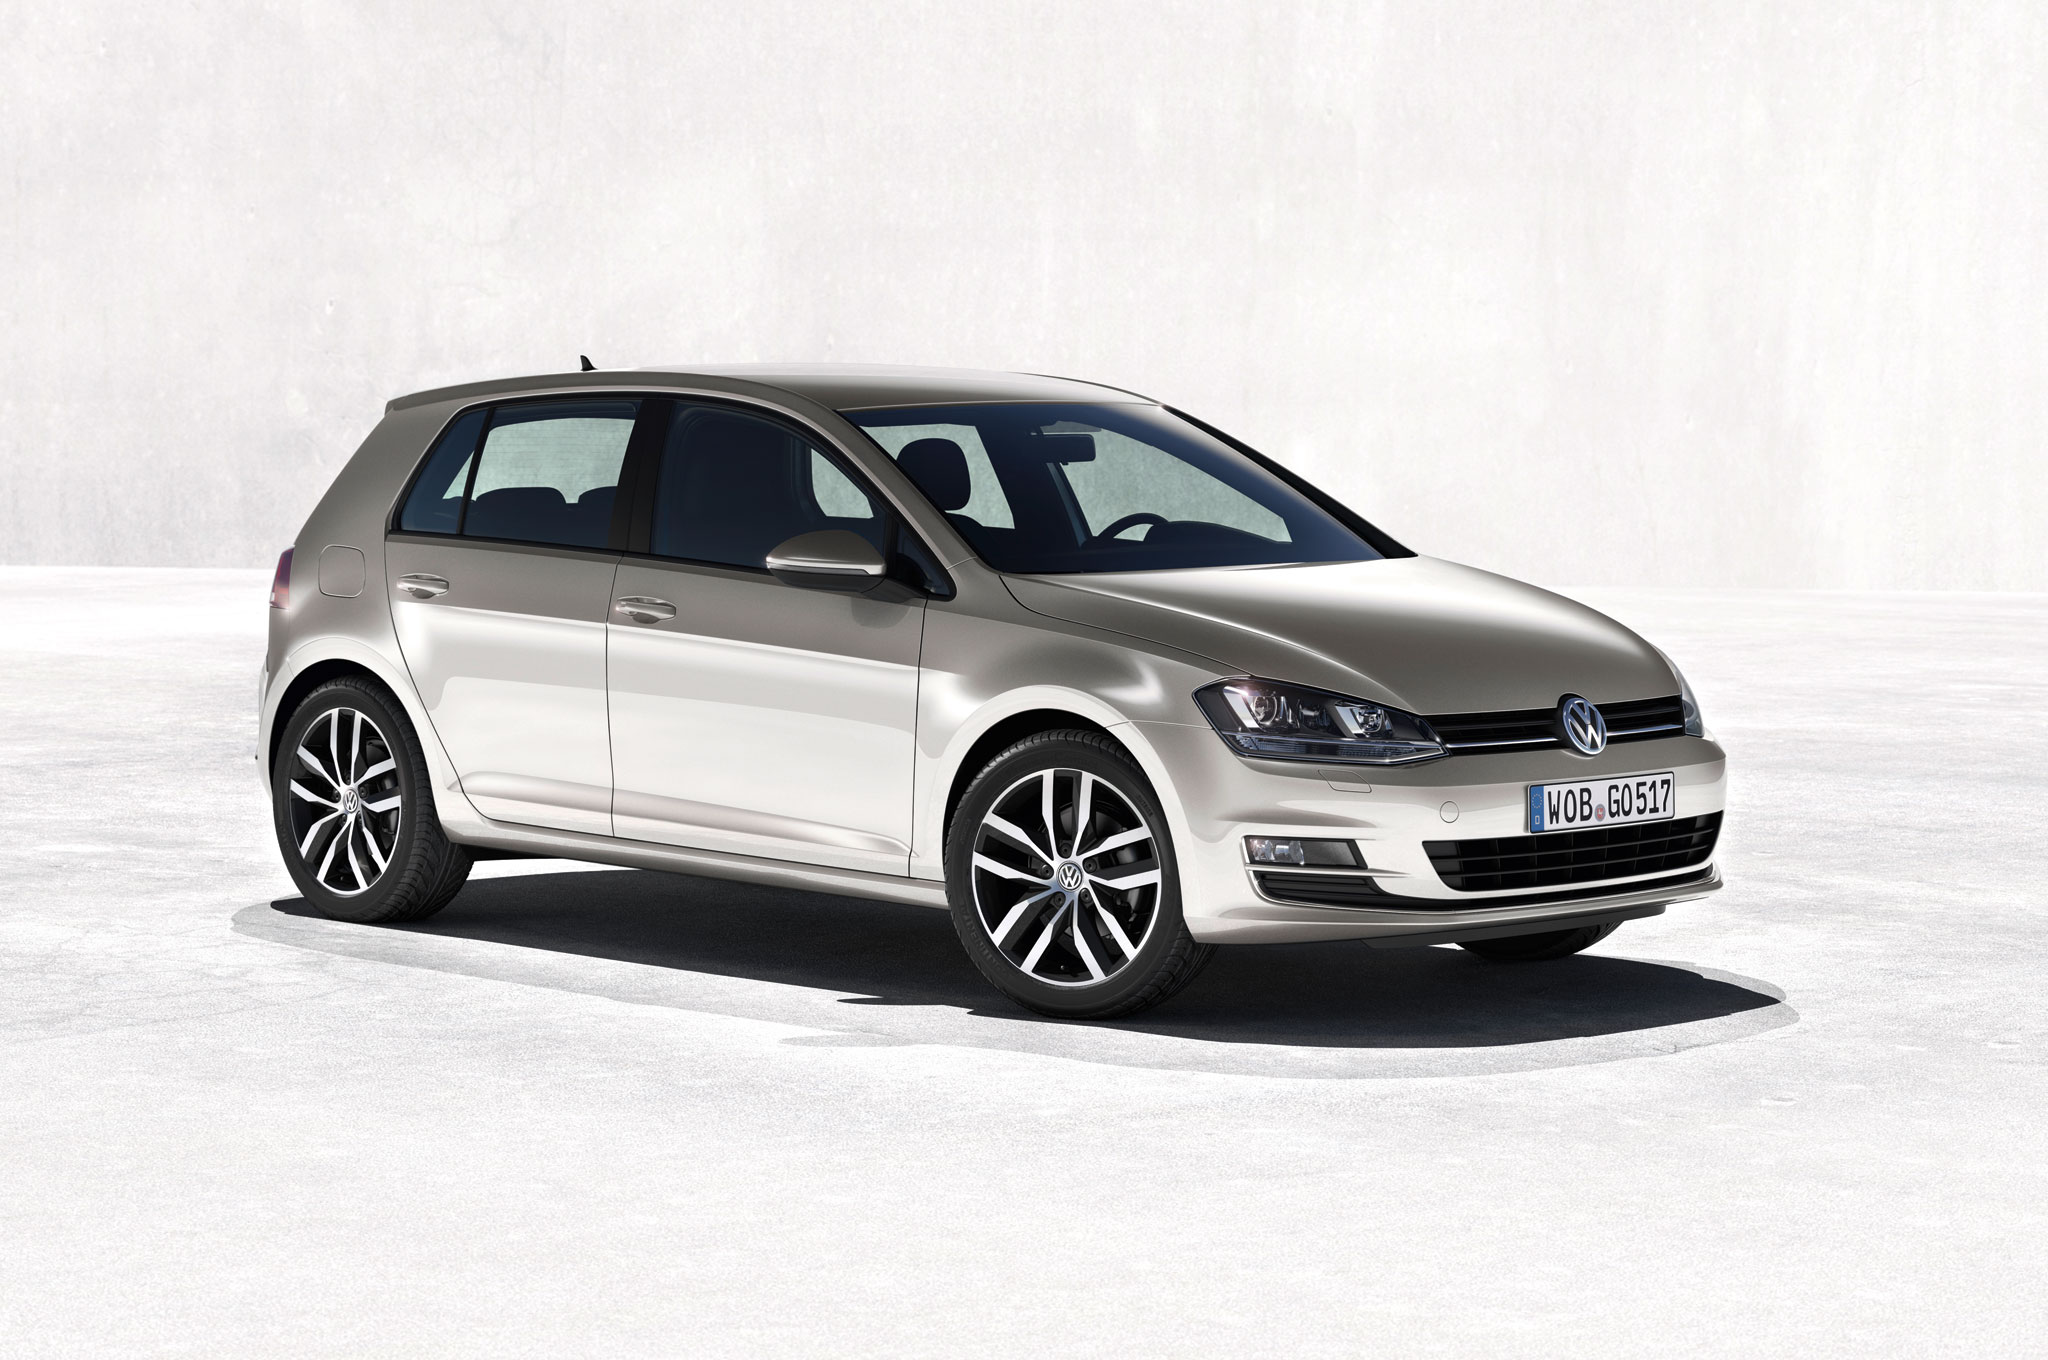 2015 Volkswagen Golf Front Right Side View